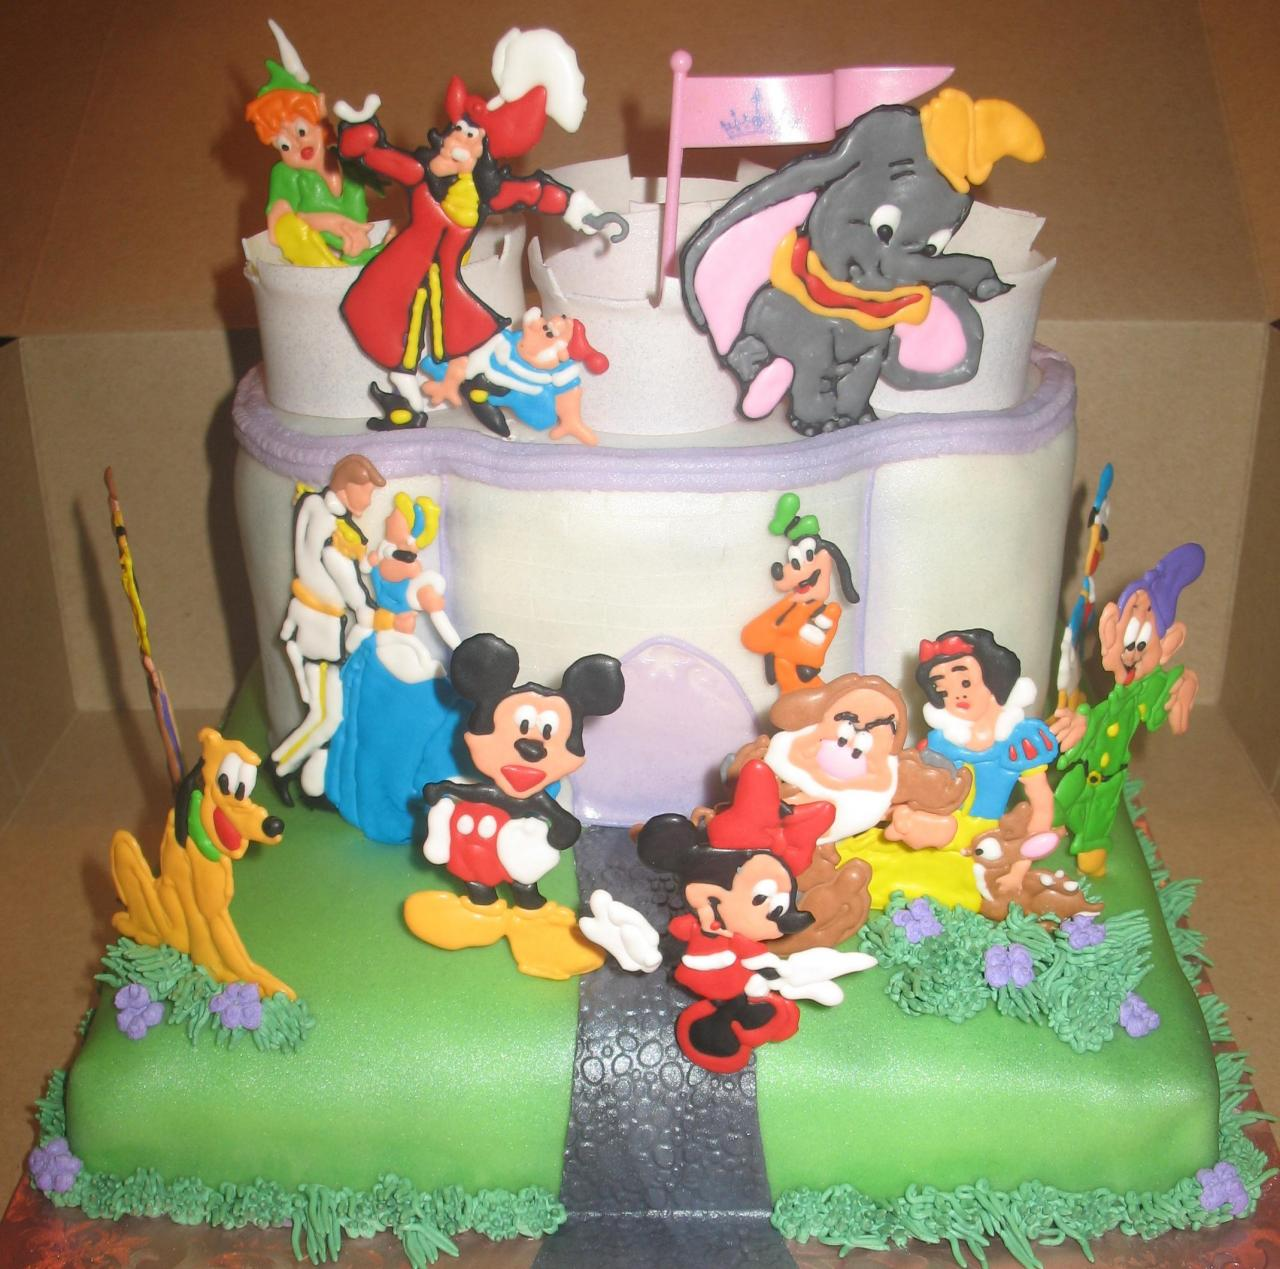 Fantastical Character Cakes - kids Cakes